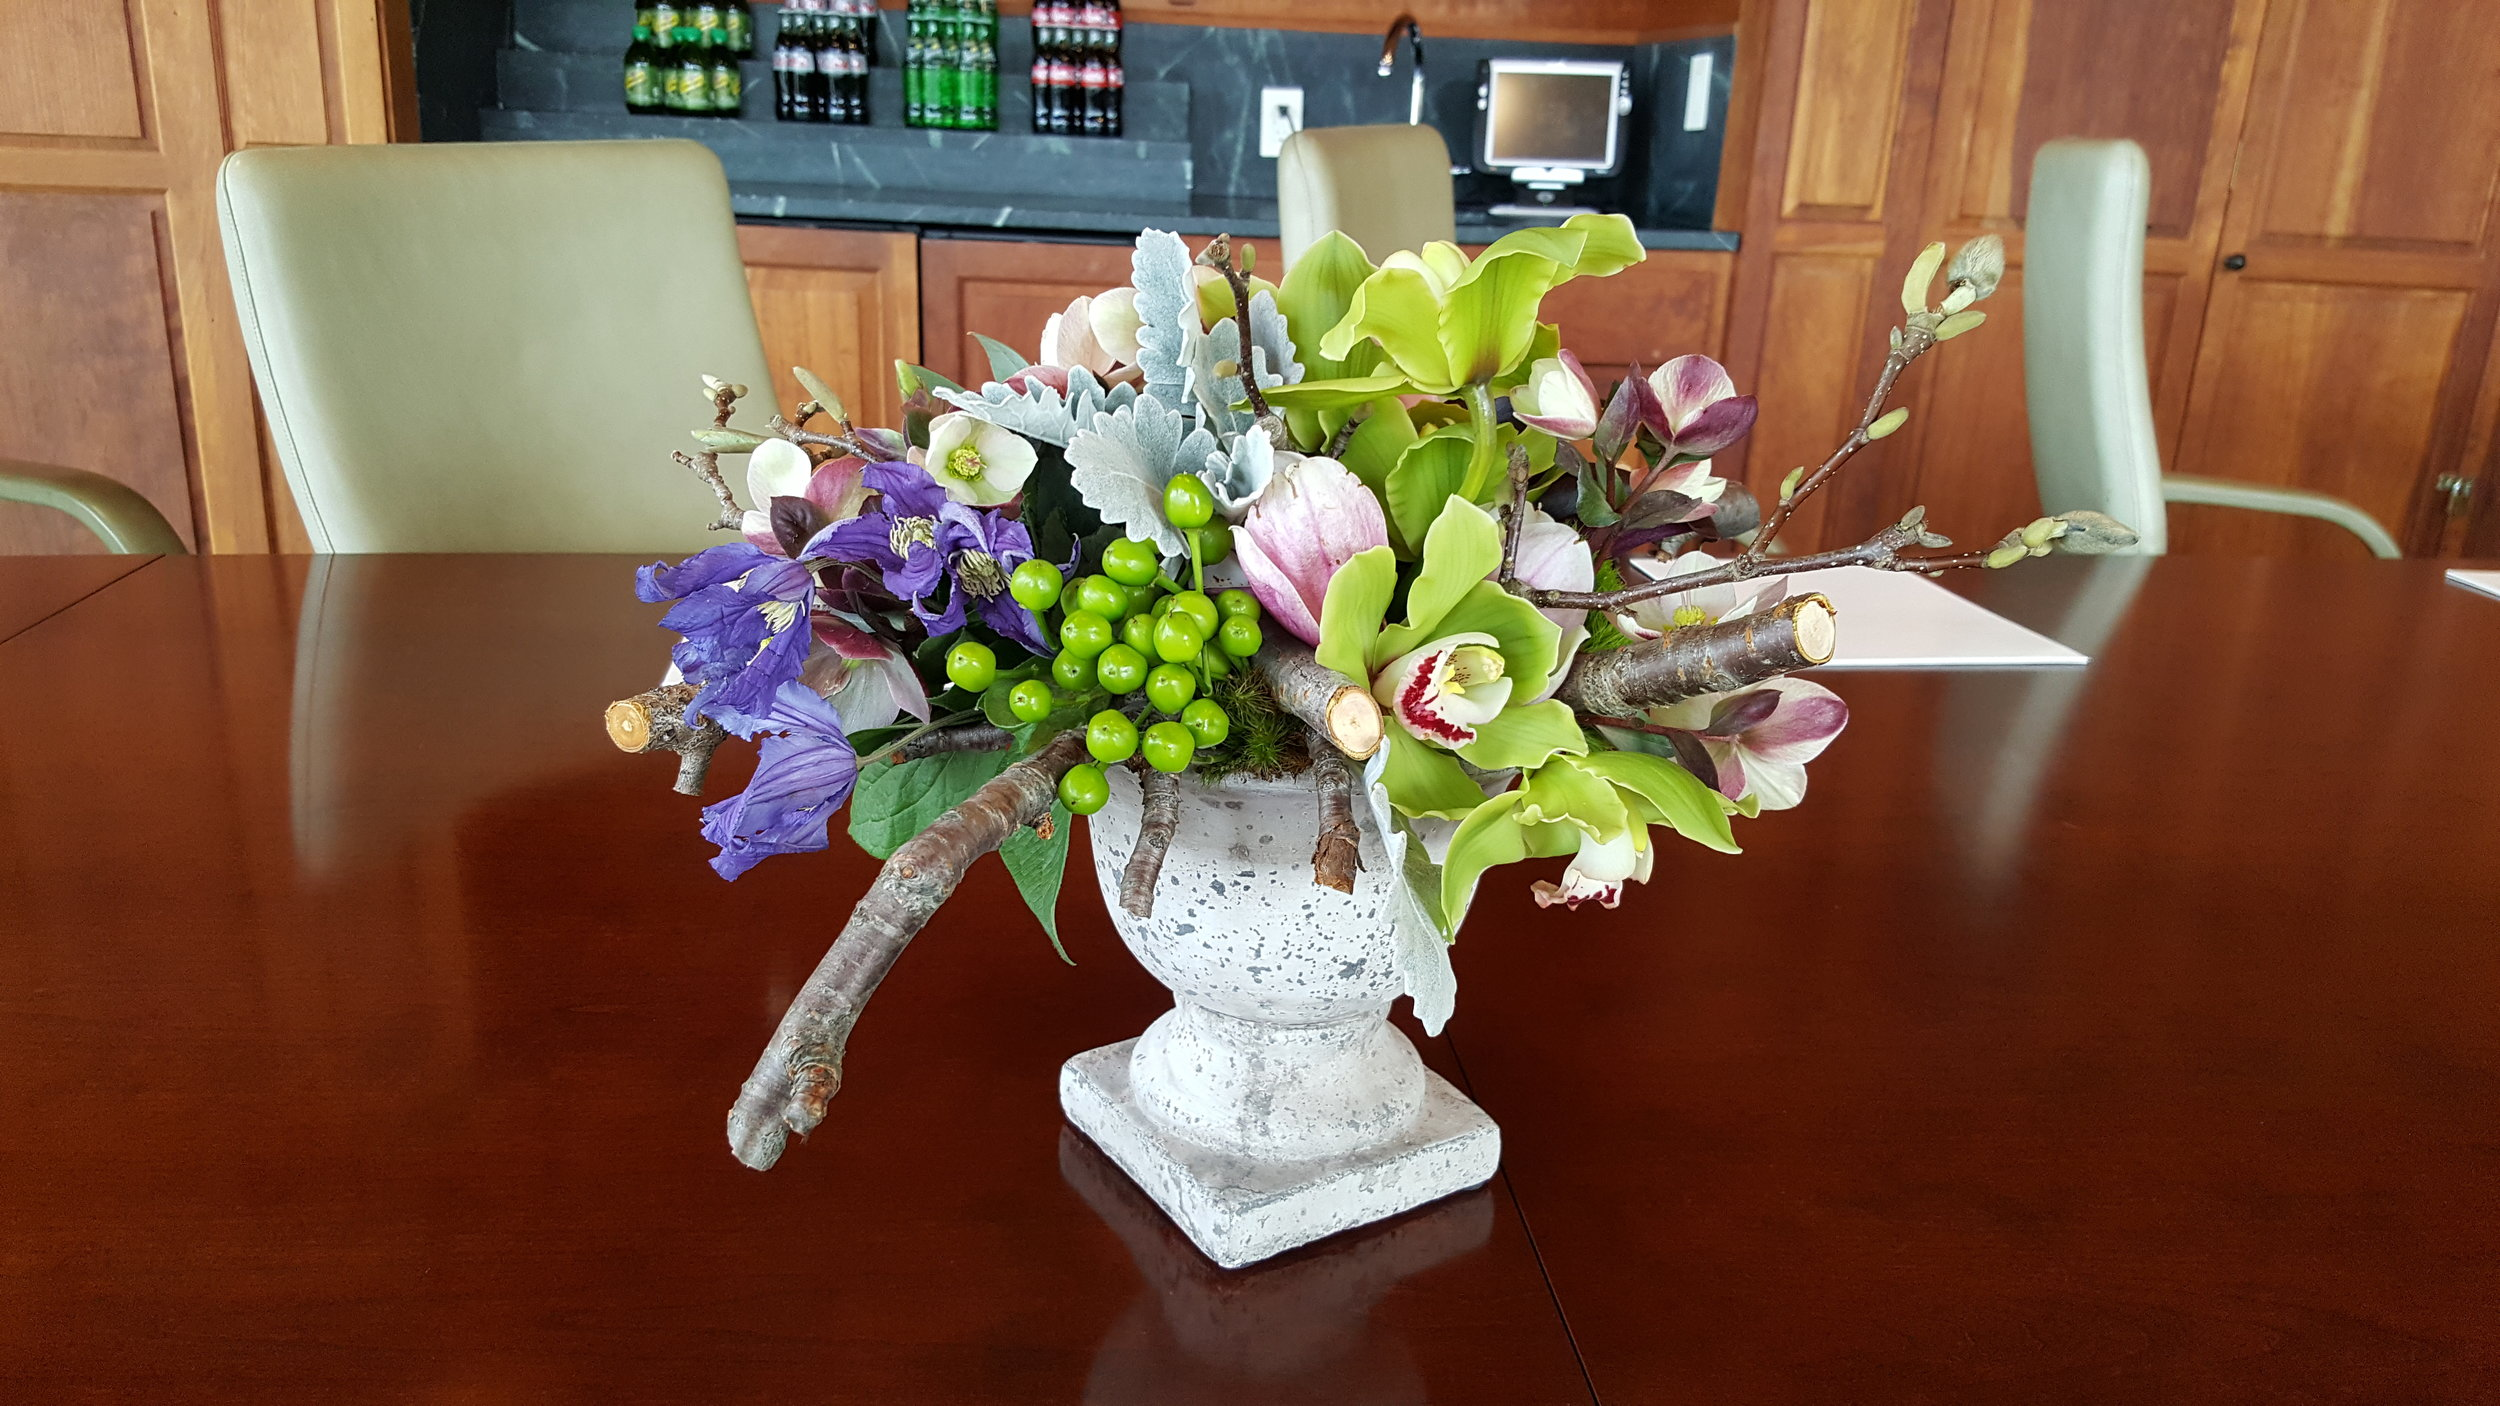 Conference table centerpiece of sticks, fruit and florals in a stone urn designed by Bouquets & Beyond